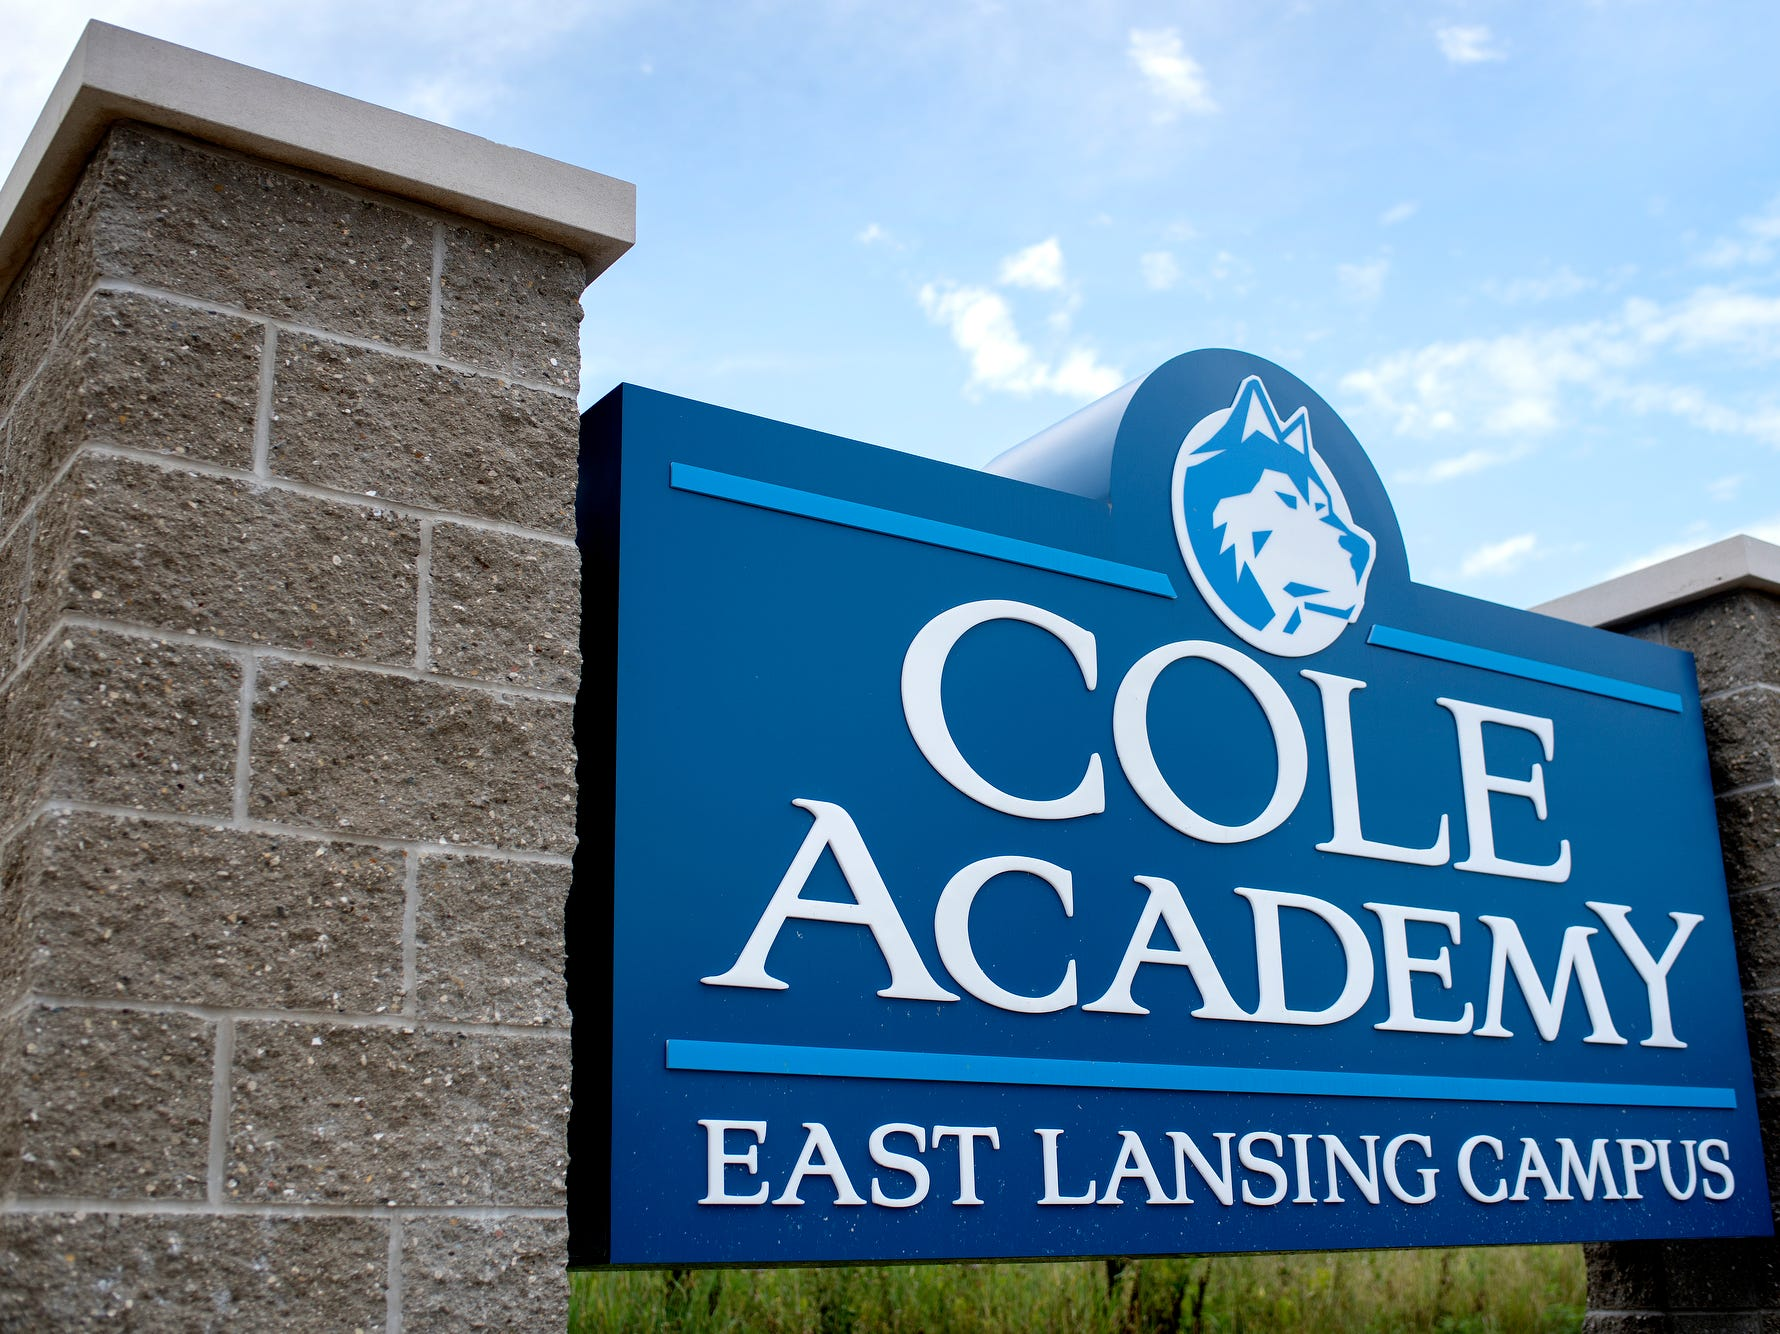 Cole Academy's school sign photographed on Wednesday, Aug. 1, 2018, at the East Lansing campus. The school, Cole Academy's second campus, is opening this fall.